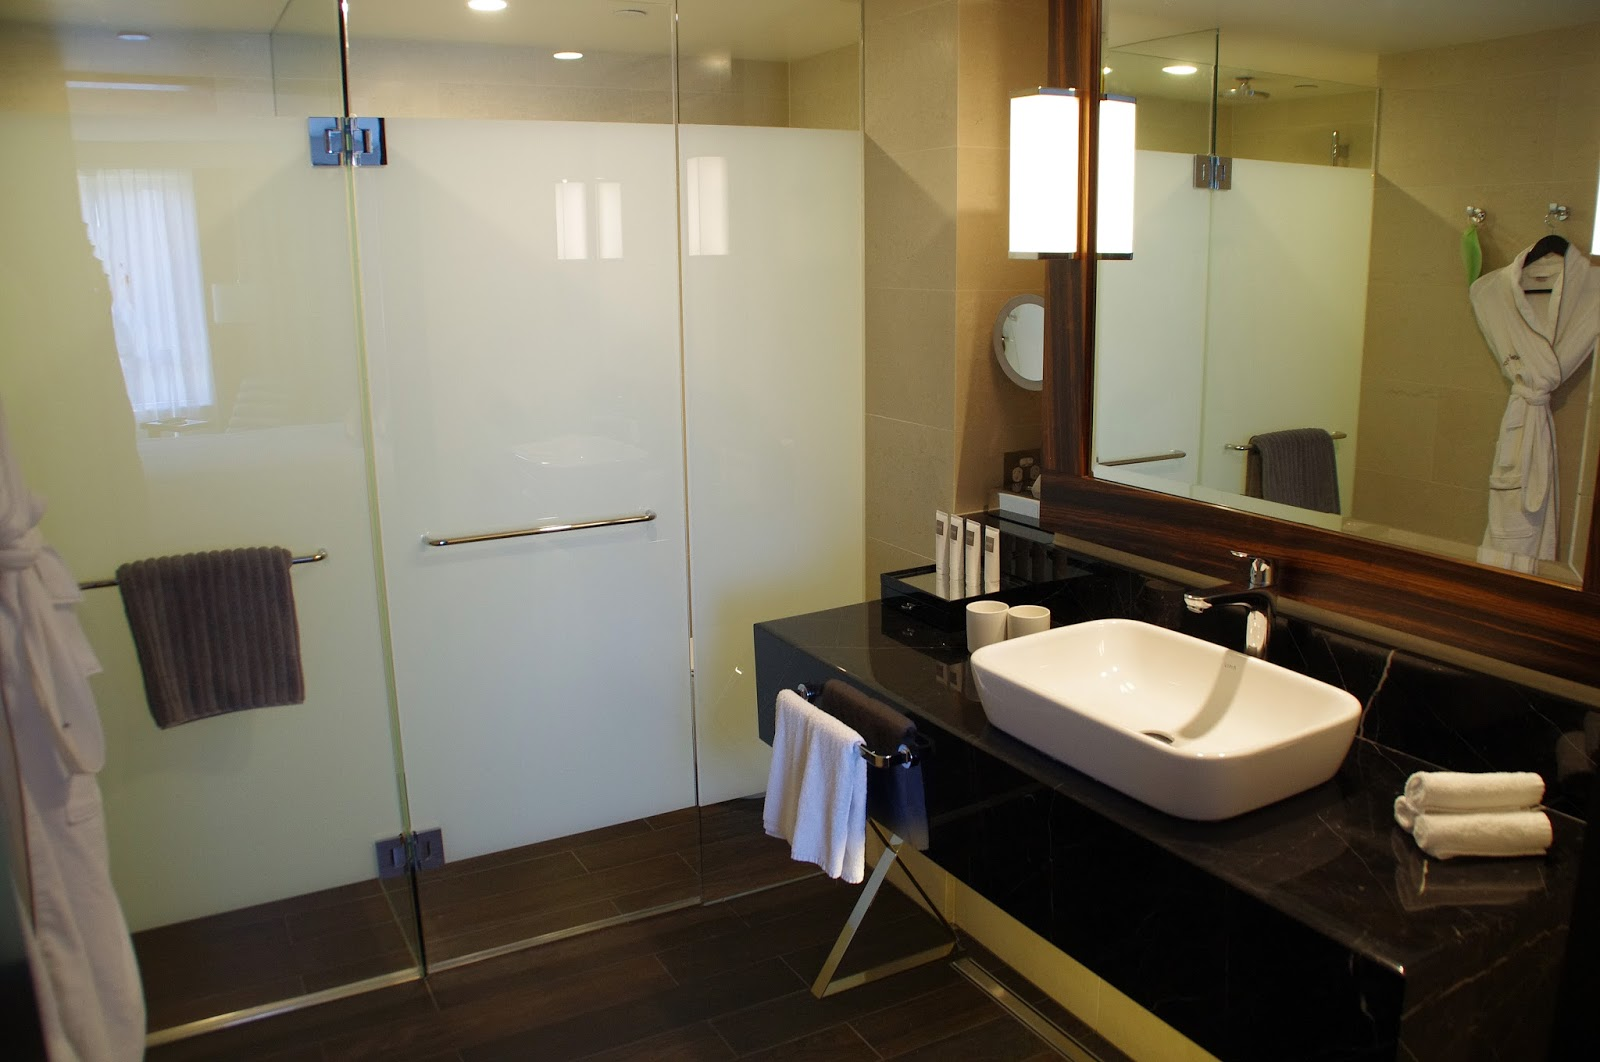 Bathroom at Swissotel in Sydney